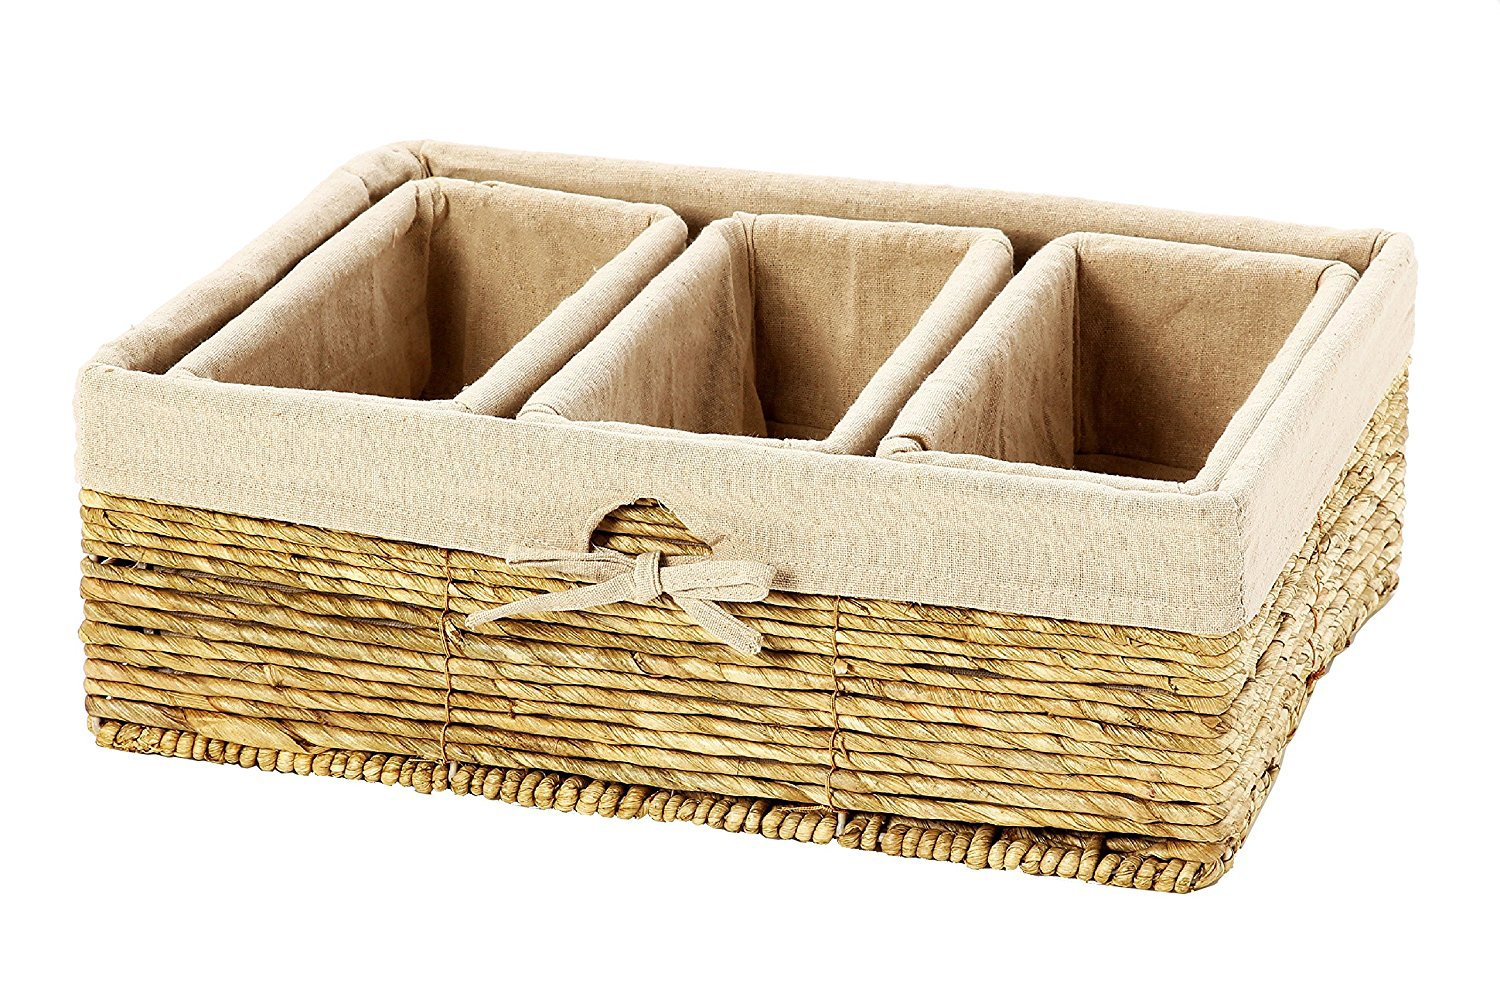 Storage Basket - 4-Piece Nesting Baskets, Beiger Storage Containers - Storage Bins Set - Wicker Corn Rope Decorative Organizing Baskets for Shelves, Magazines, Books, Toys - 3 Small, 1 Large by Juvale